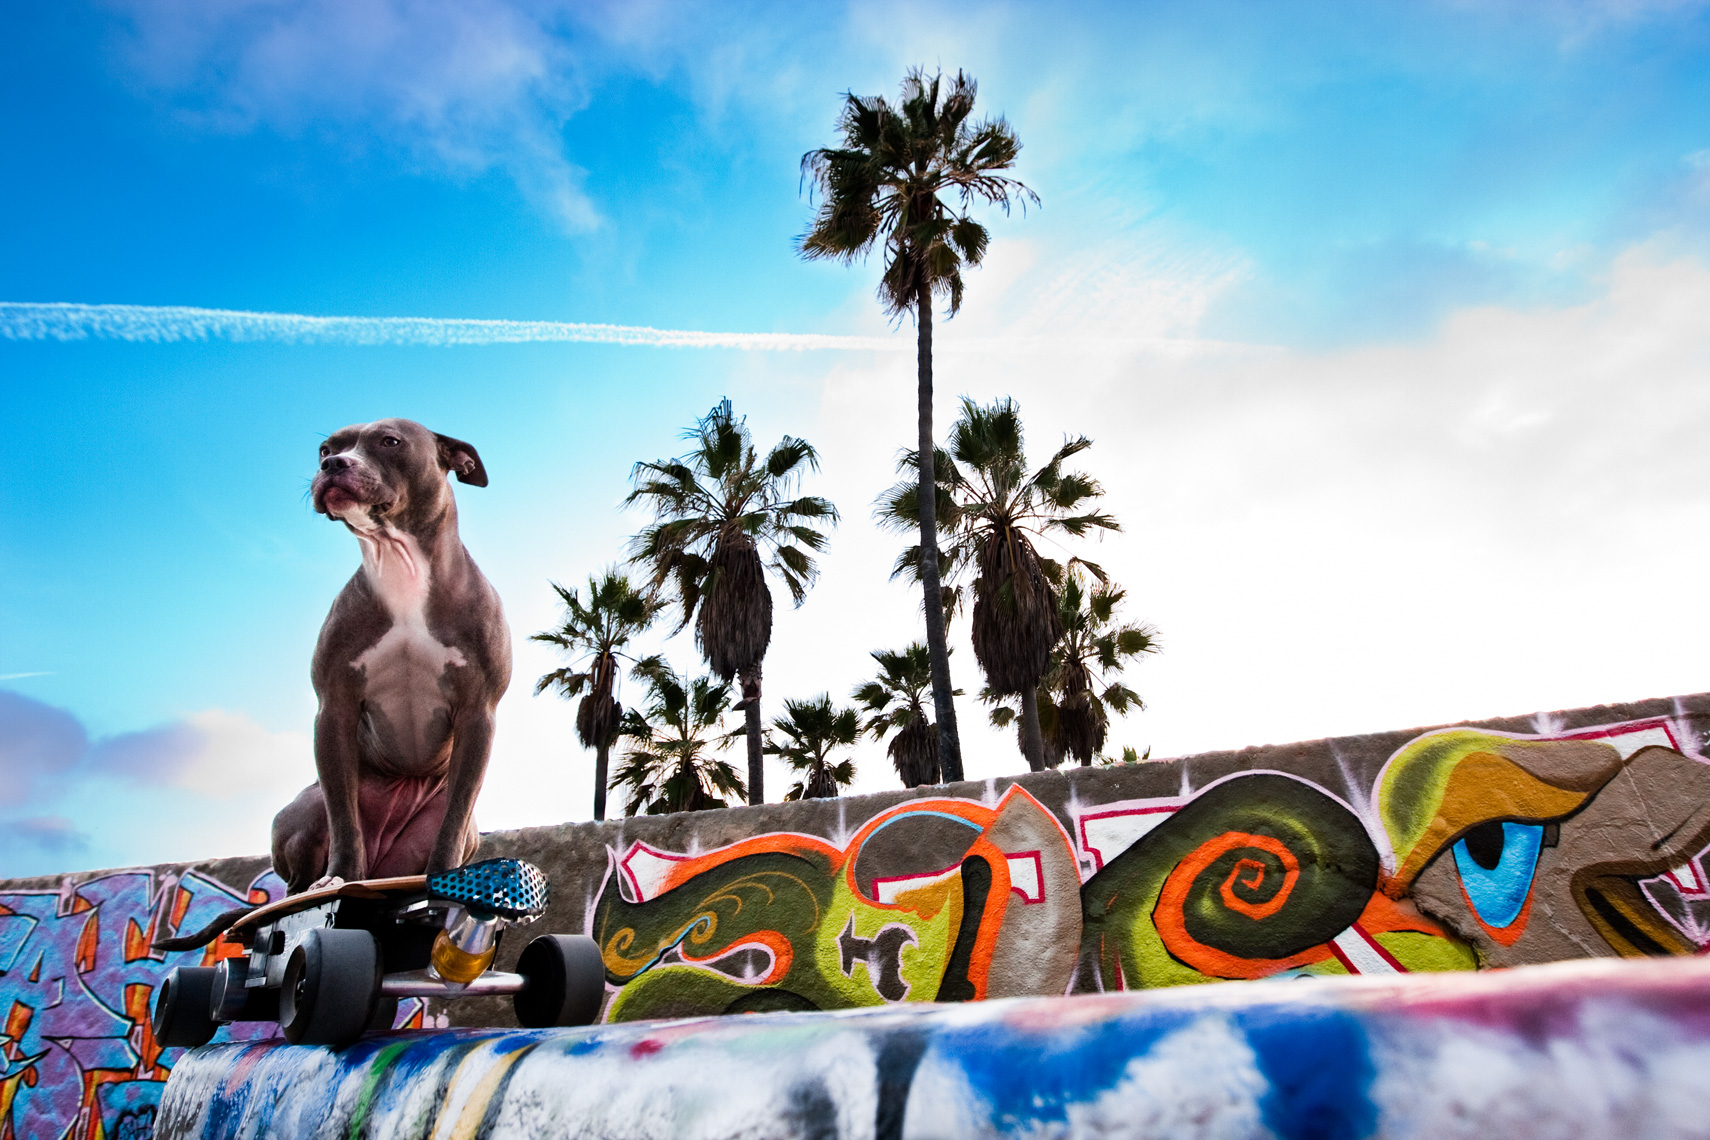 Los Angeles Dog Photography, Michael Brian, Pit Bull, Venice Beach, graffiti, palm trees, Blue Nose, Kasha Fierce, California, blue sky